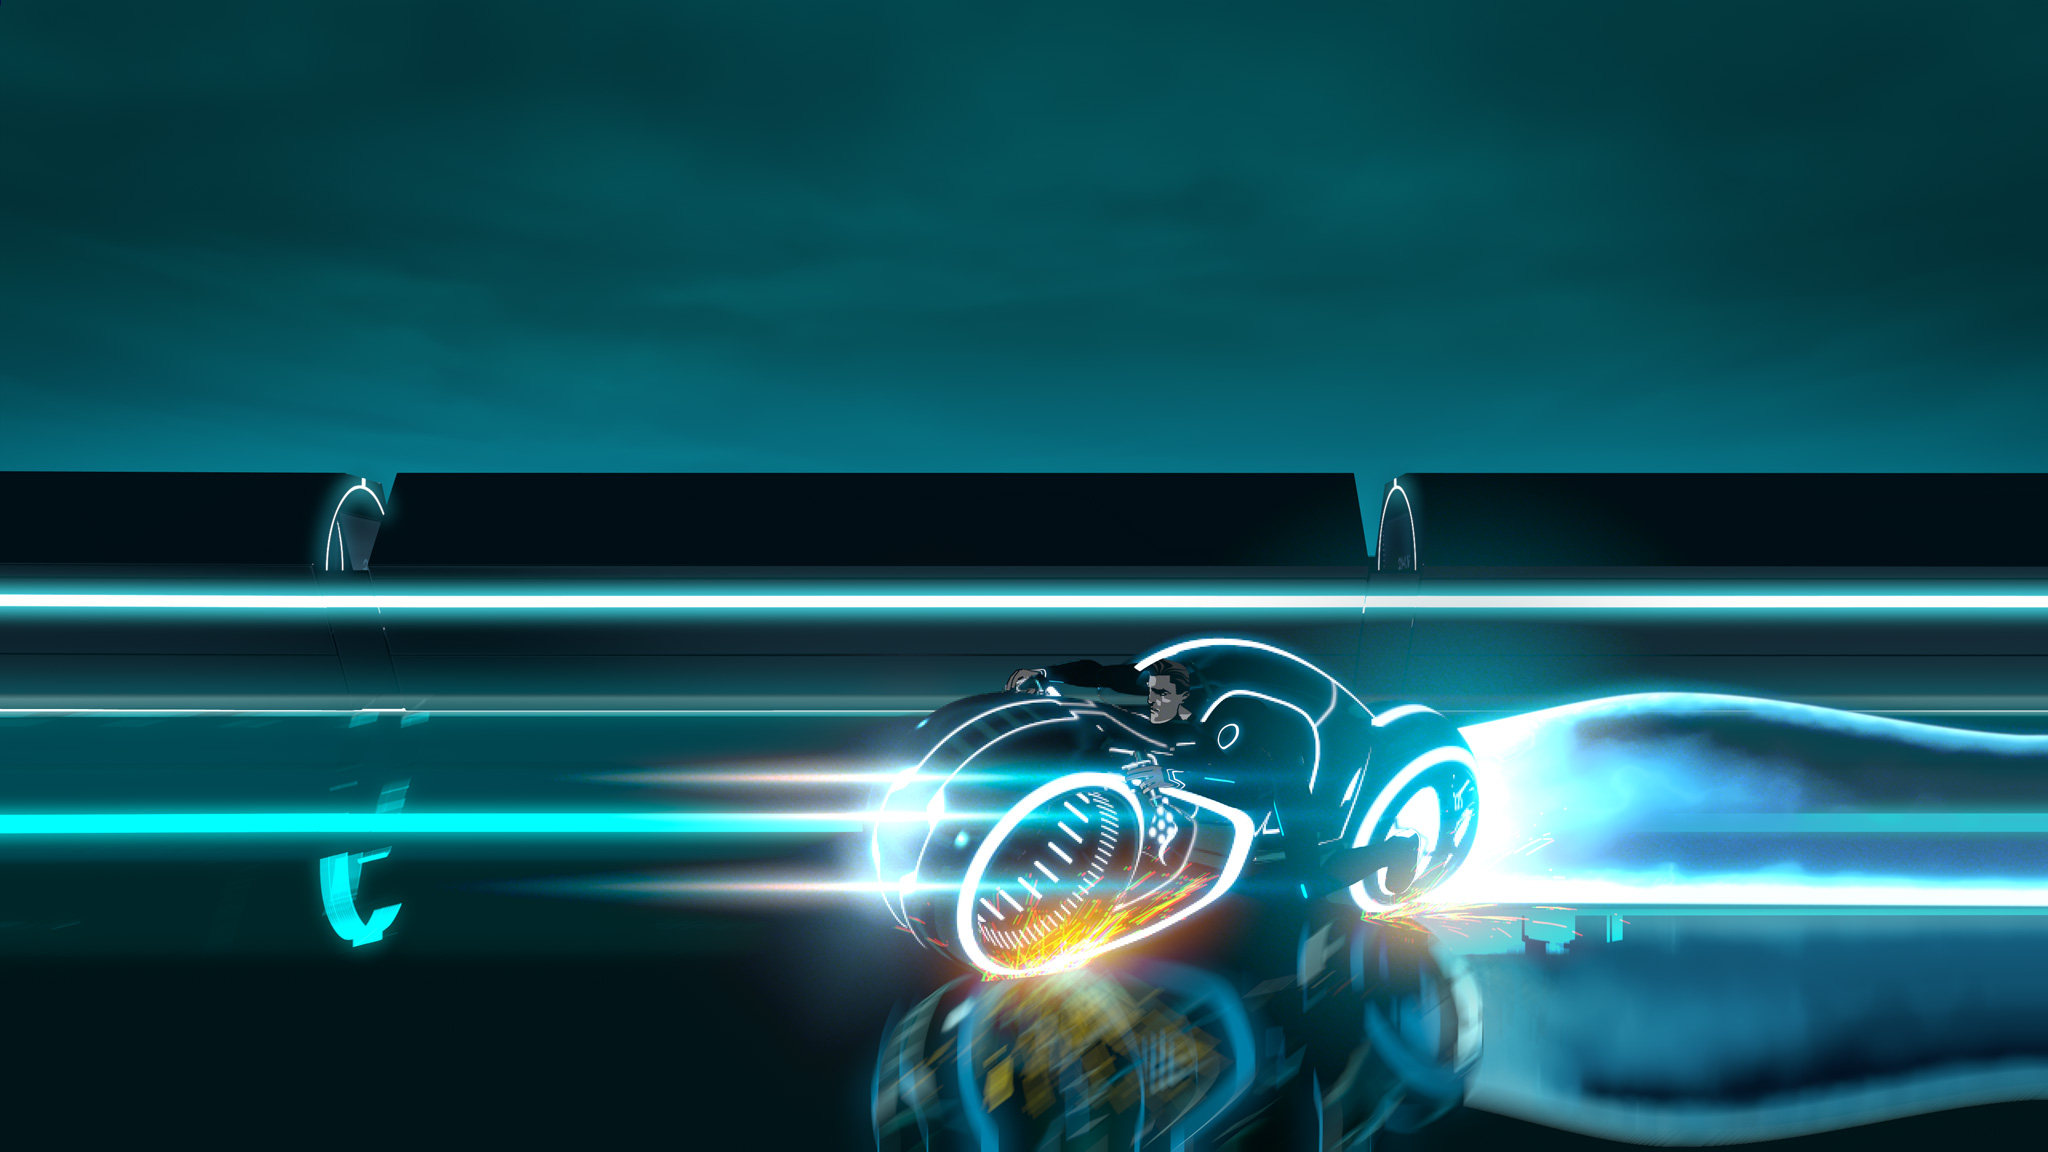 Tron: Uprising Wallpapers, Pictures, Images